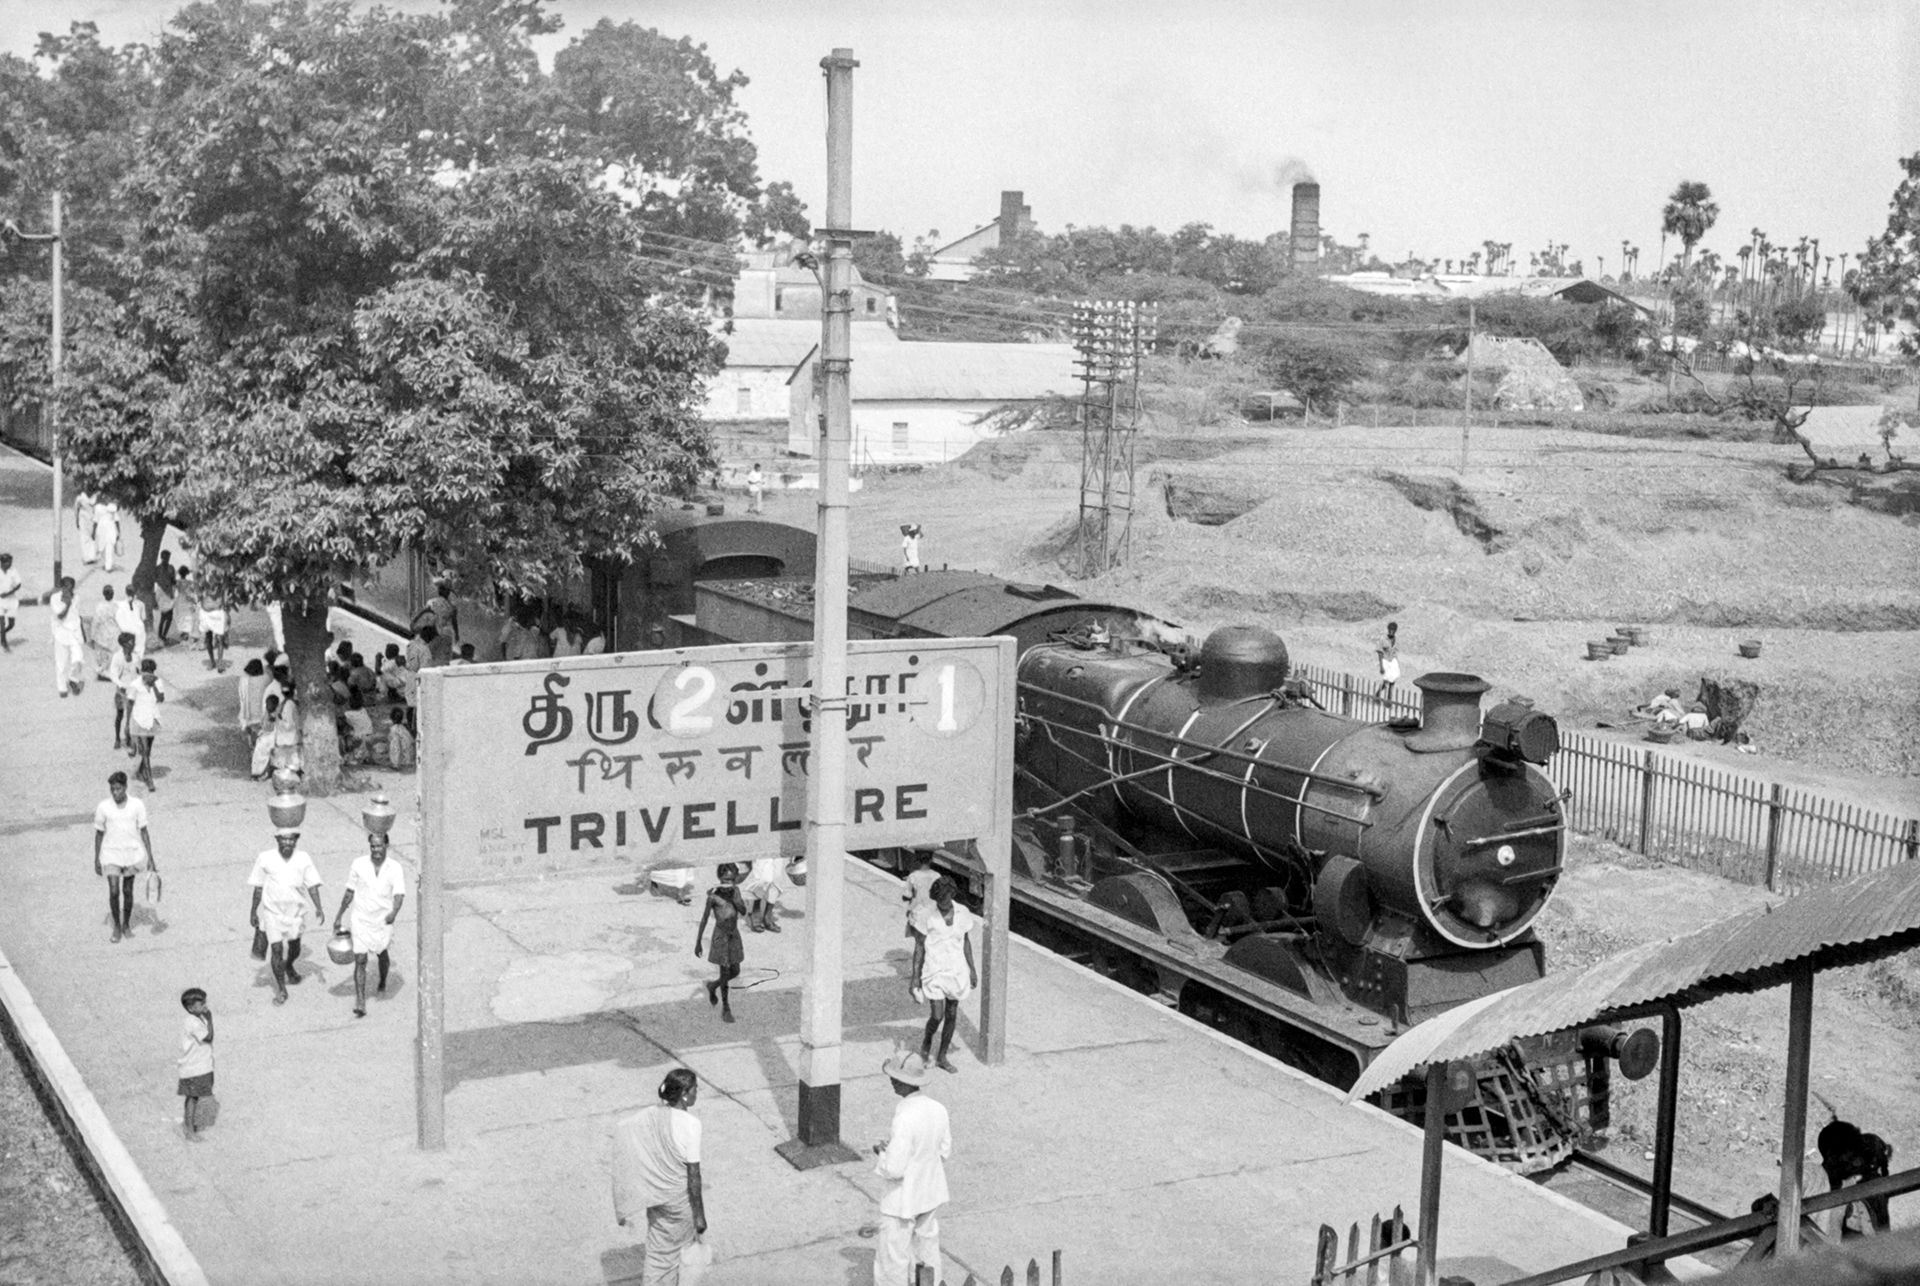 Steam loco at Trivellore (Tiruvallur) in September 1965. Credit: Ian Manning and Poochi Venkat